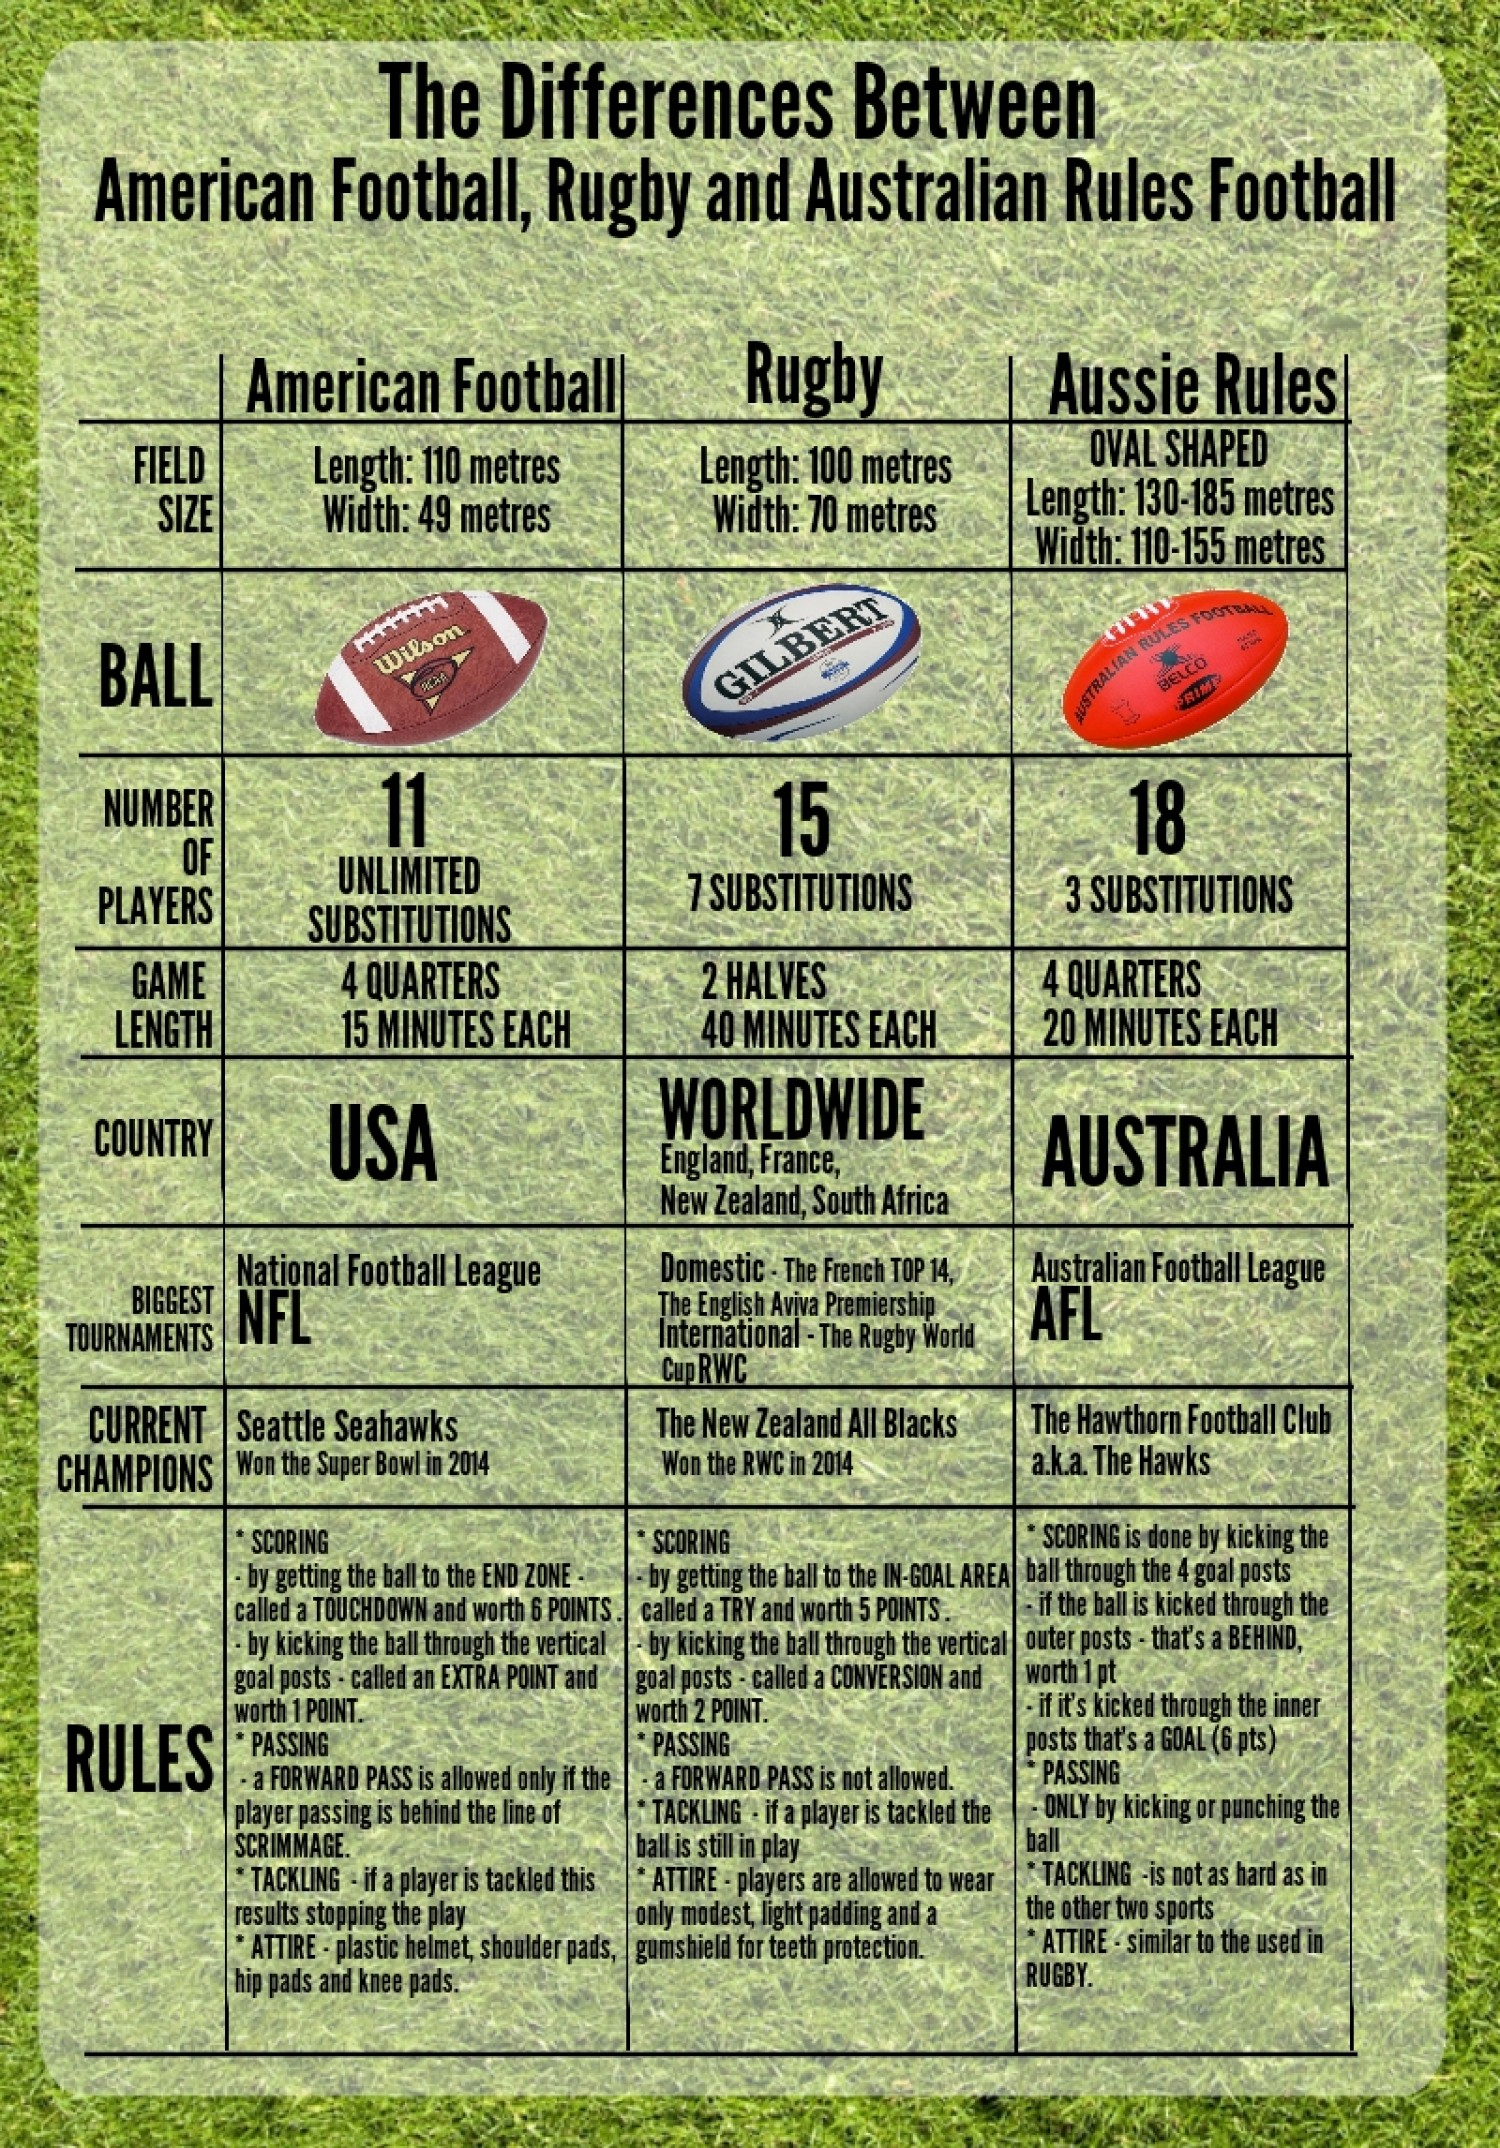 Difference Between American Football, Rugby and Australian Rules